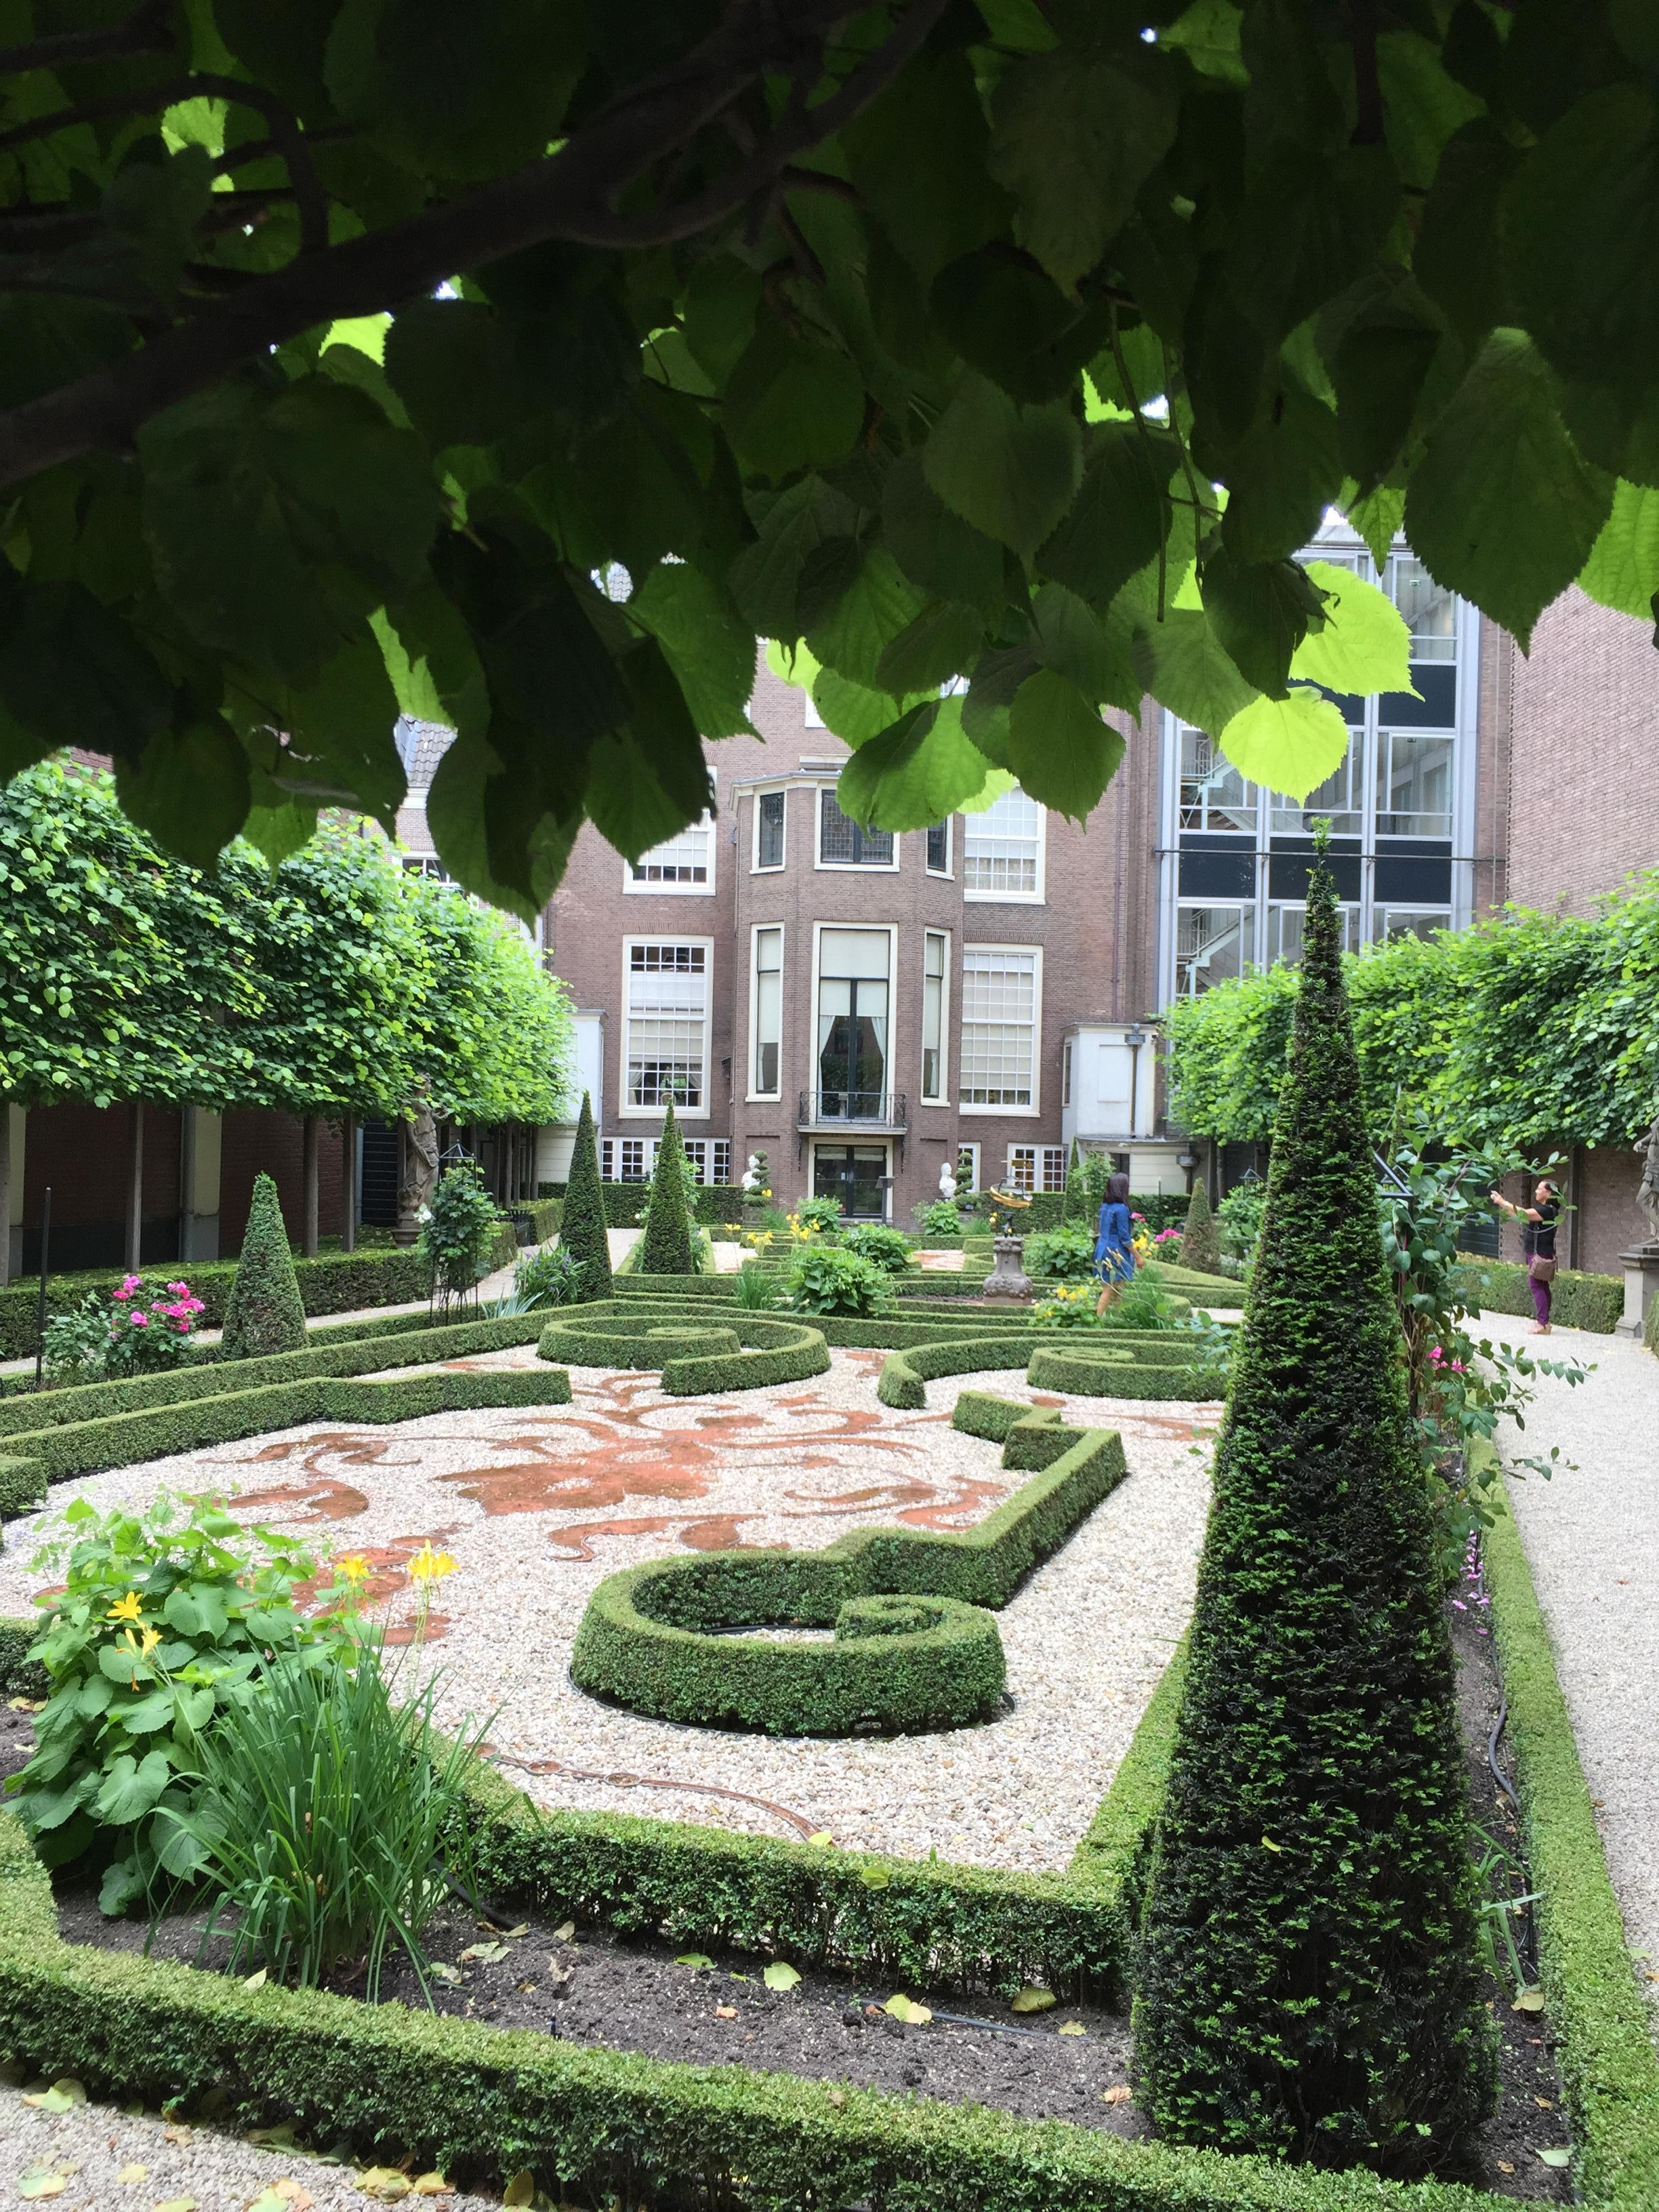 A courtyard in Amsterdam